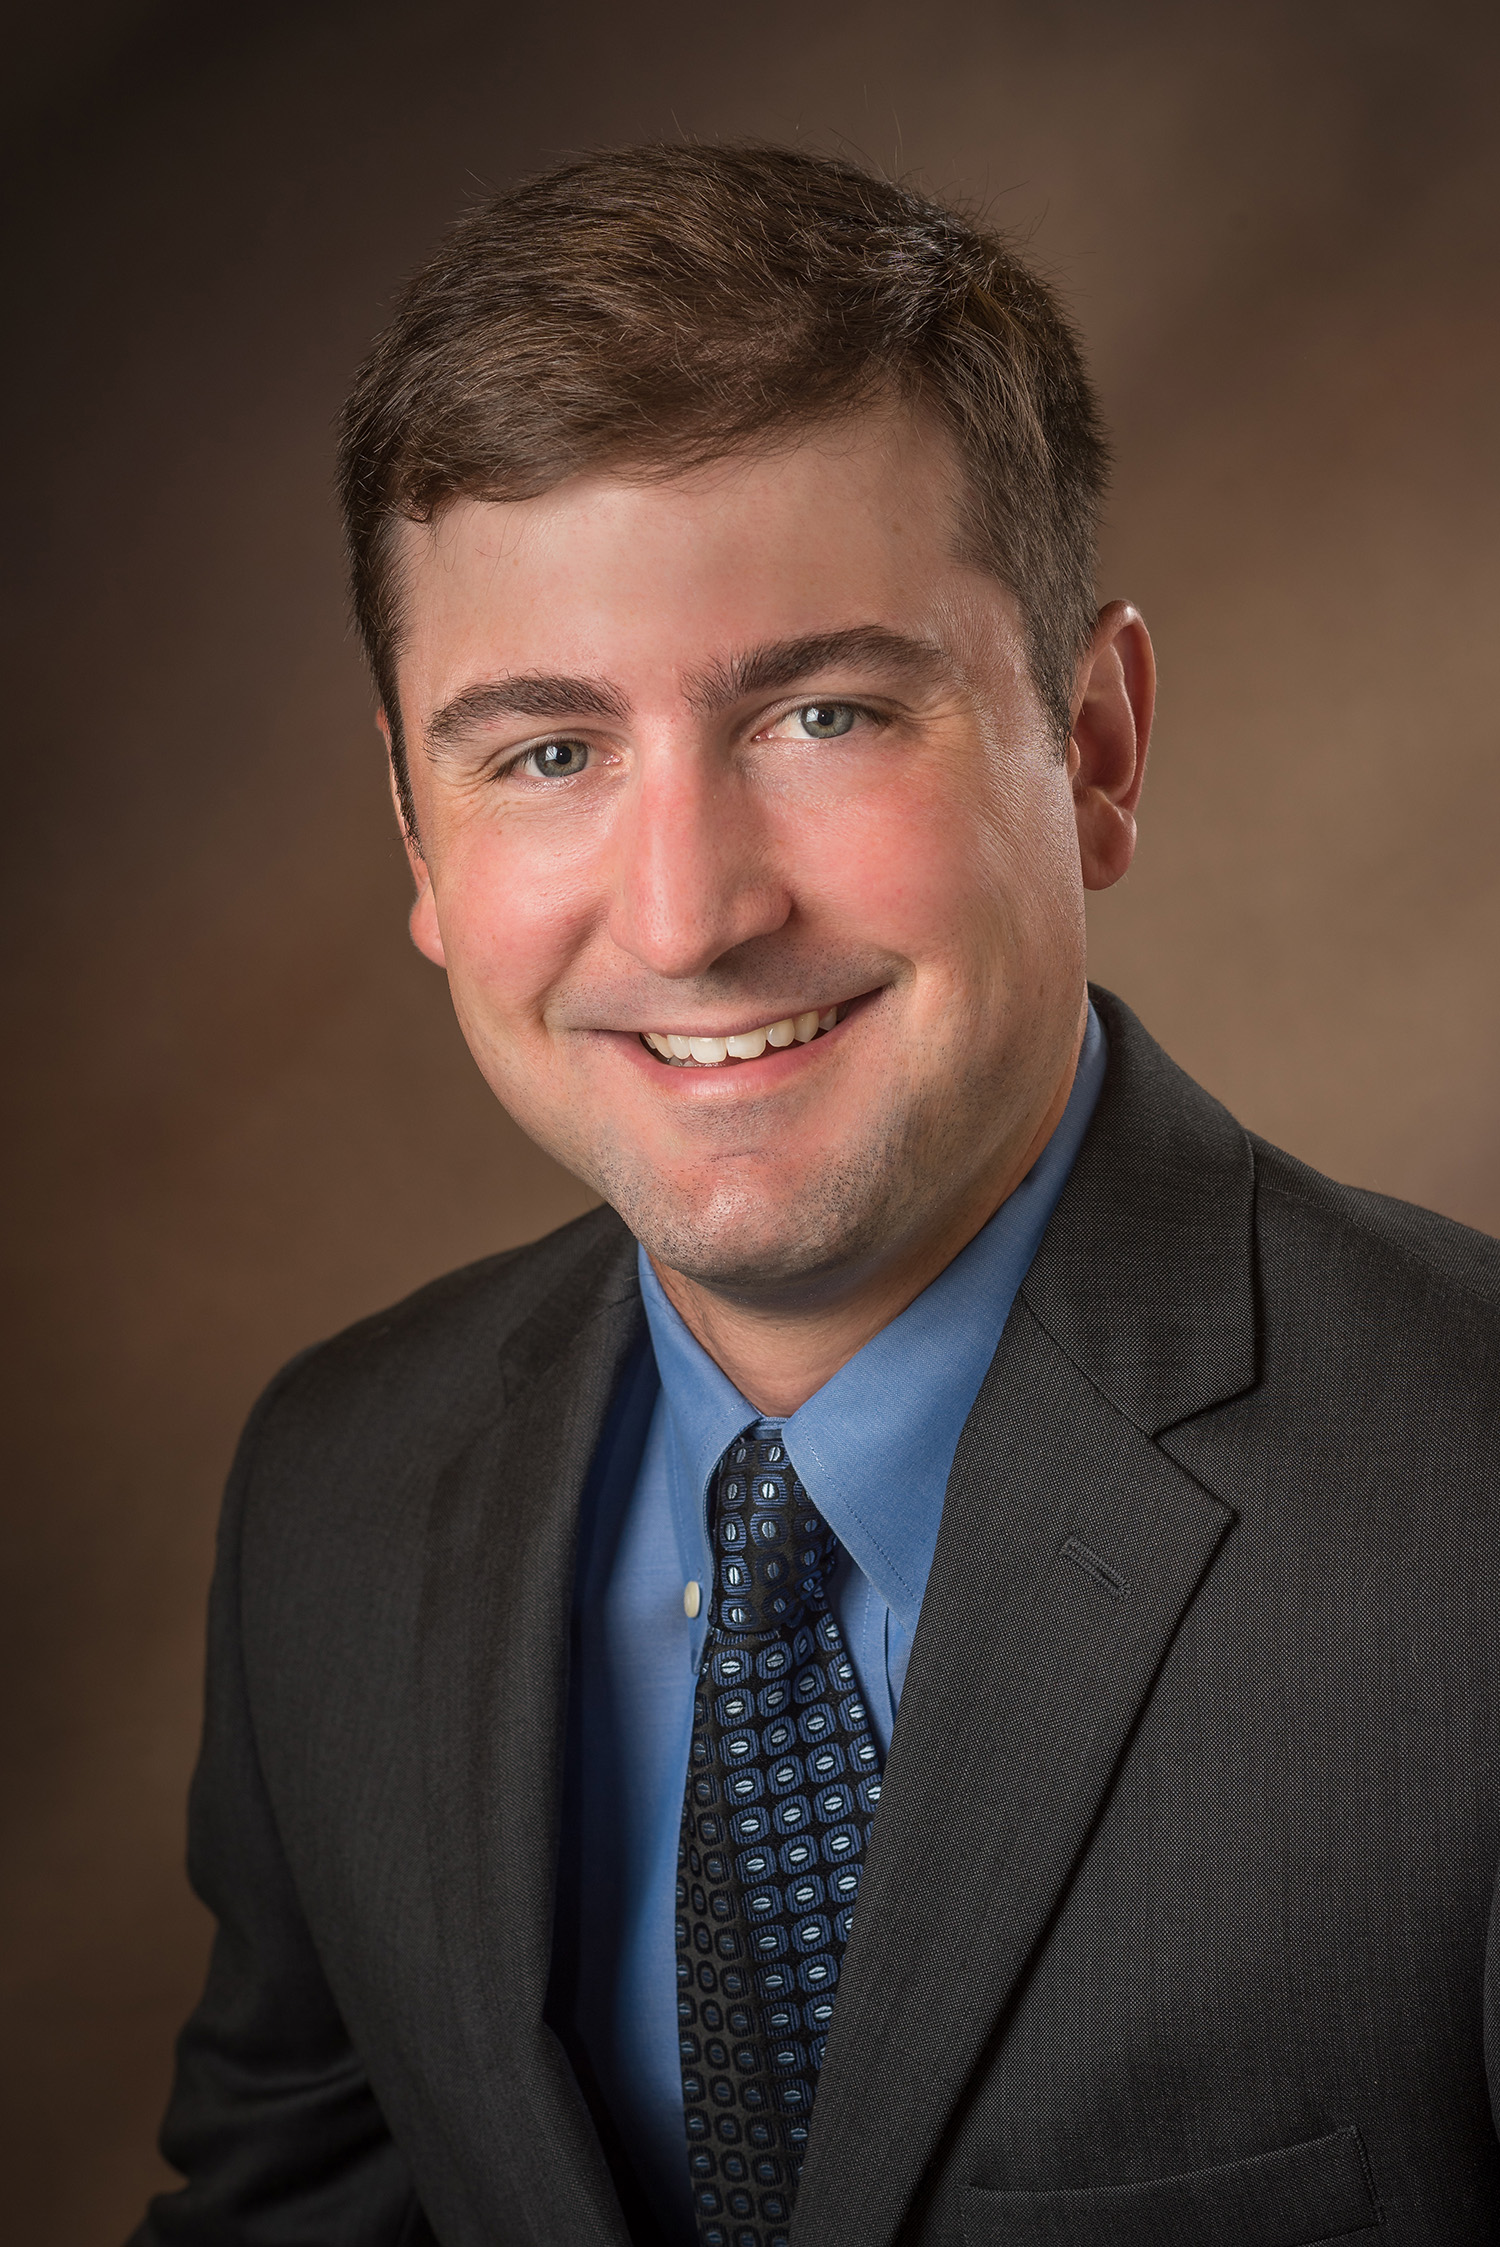 Interventional Radiologist Zachary Liner, MD, Joins North